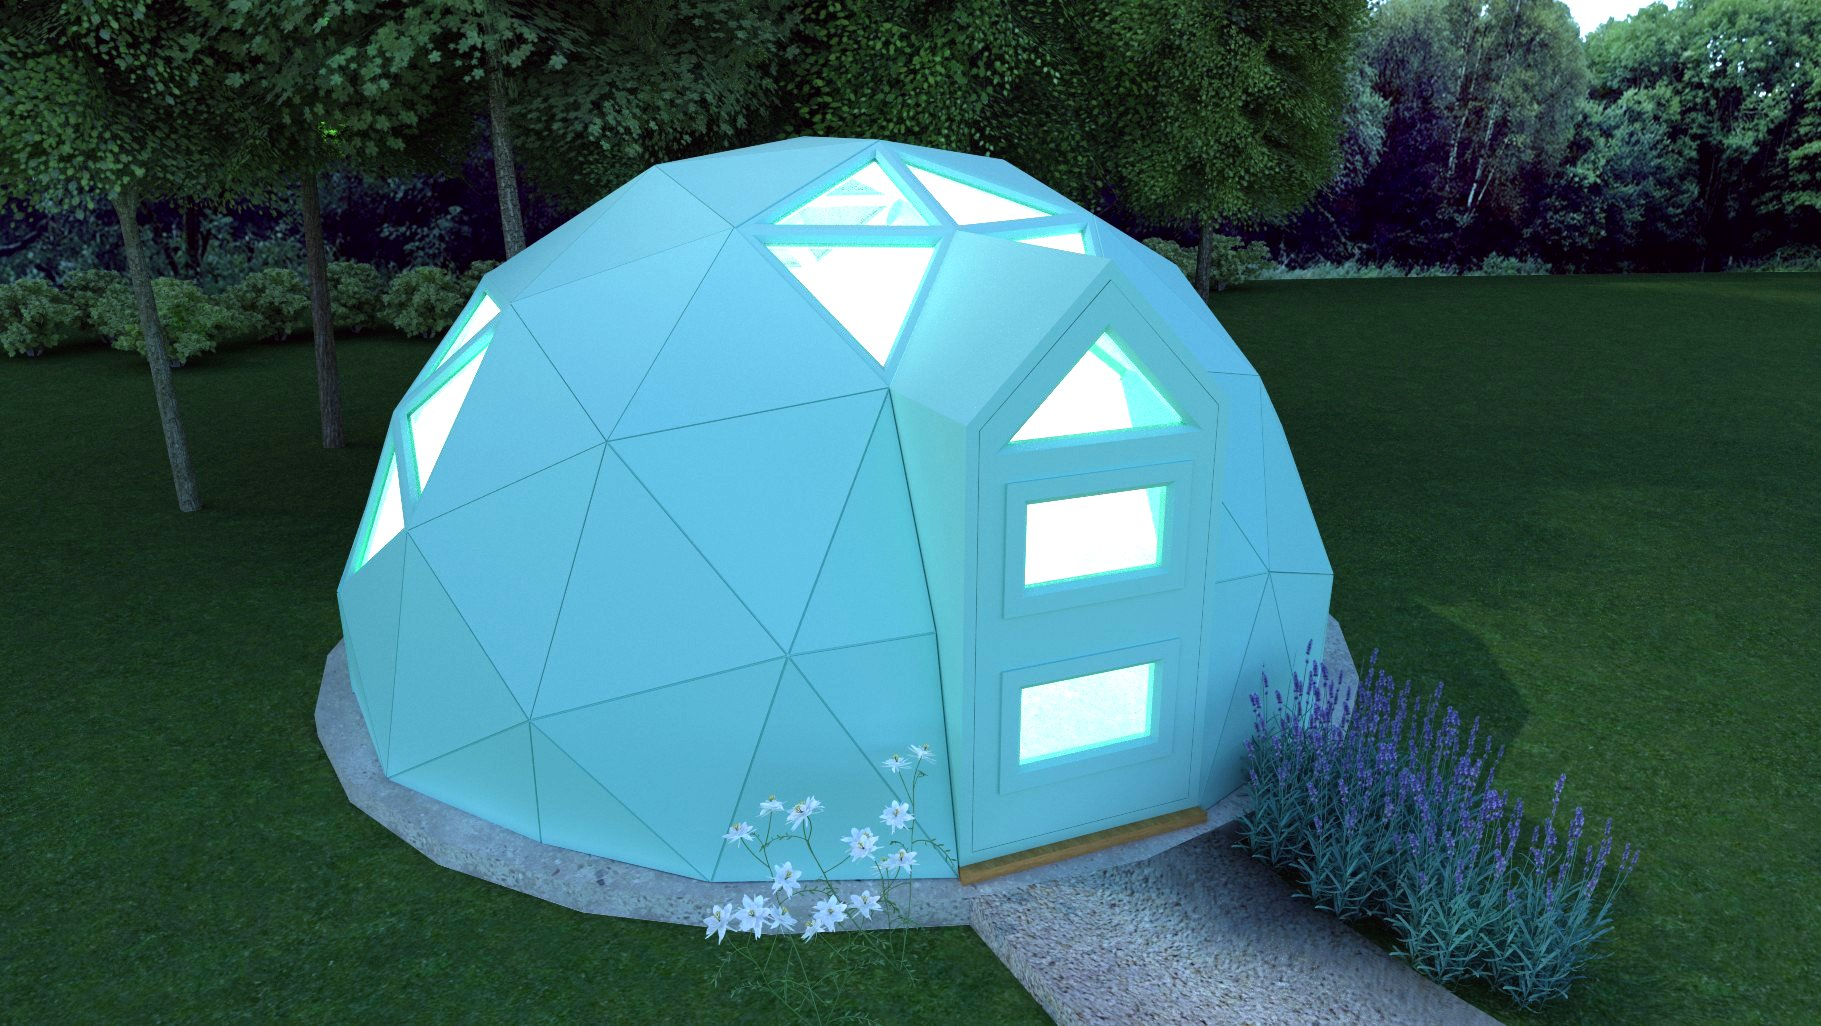 Image of a Unique Dome lit up in a garden setting.